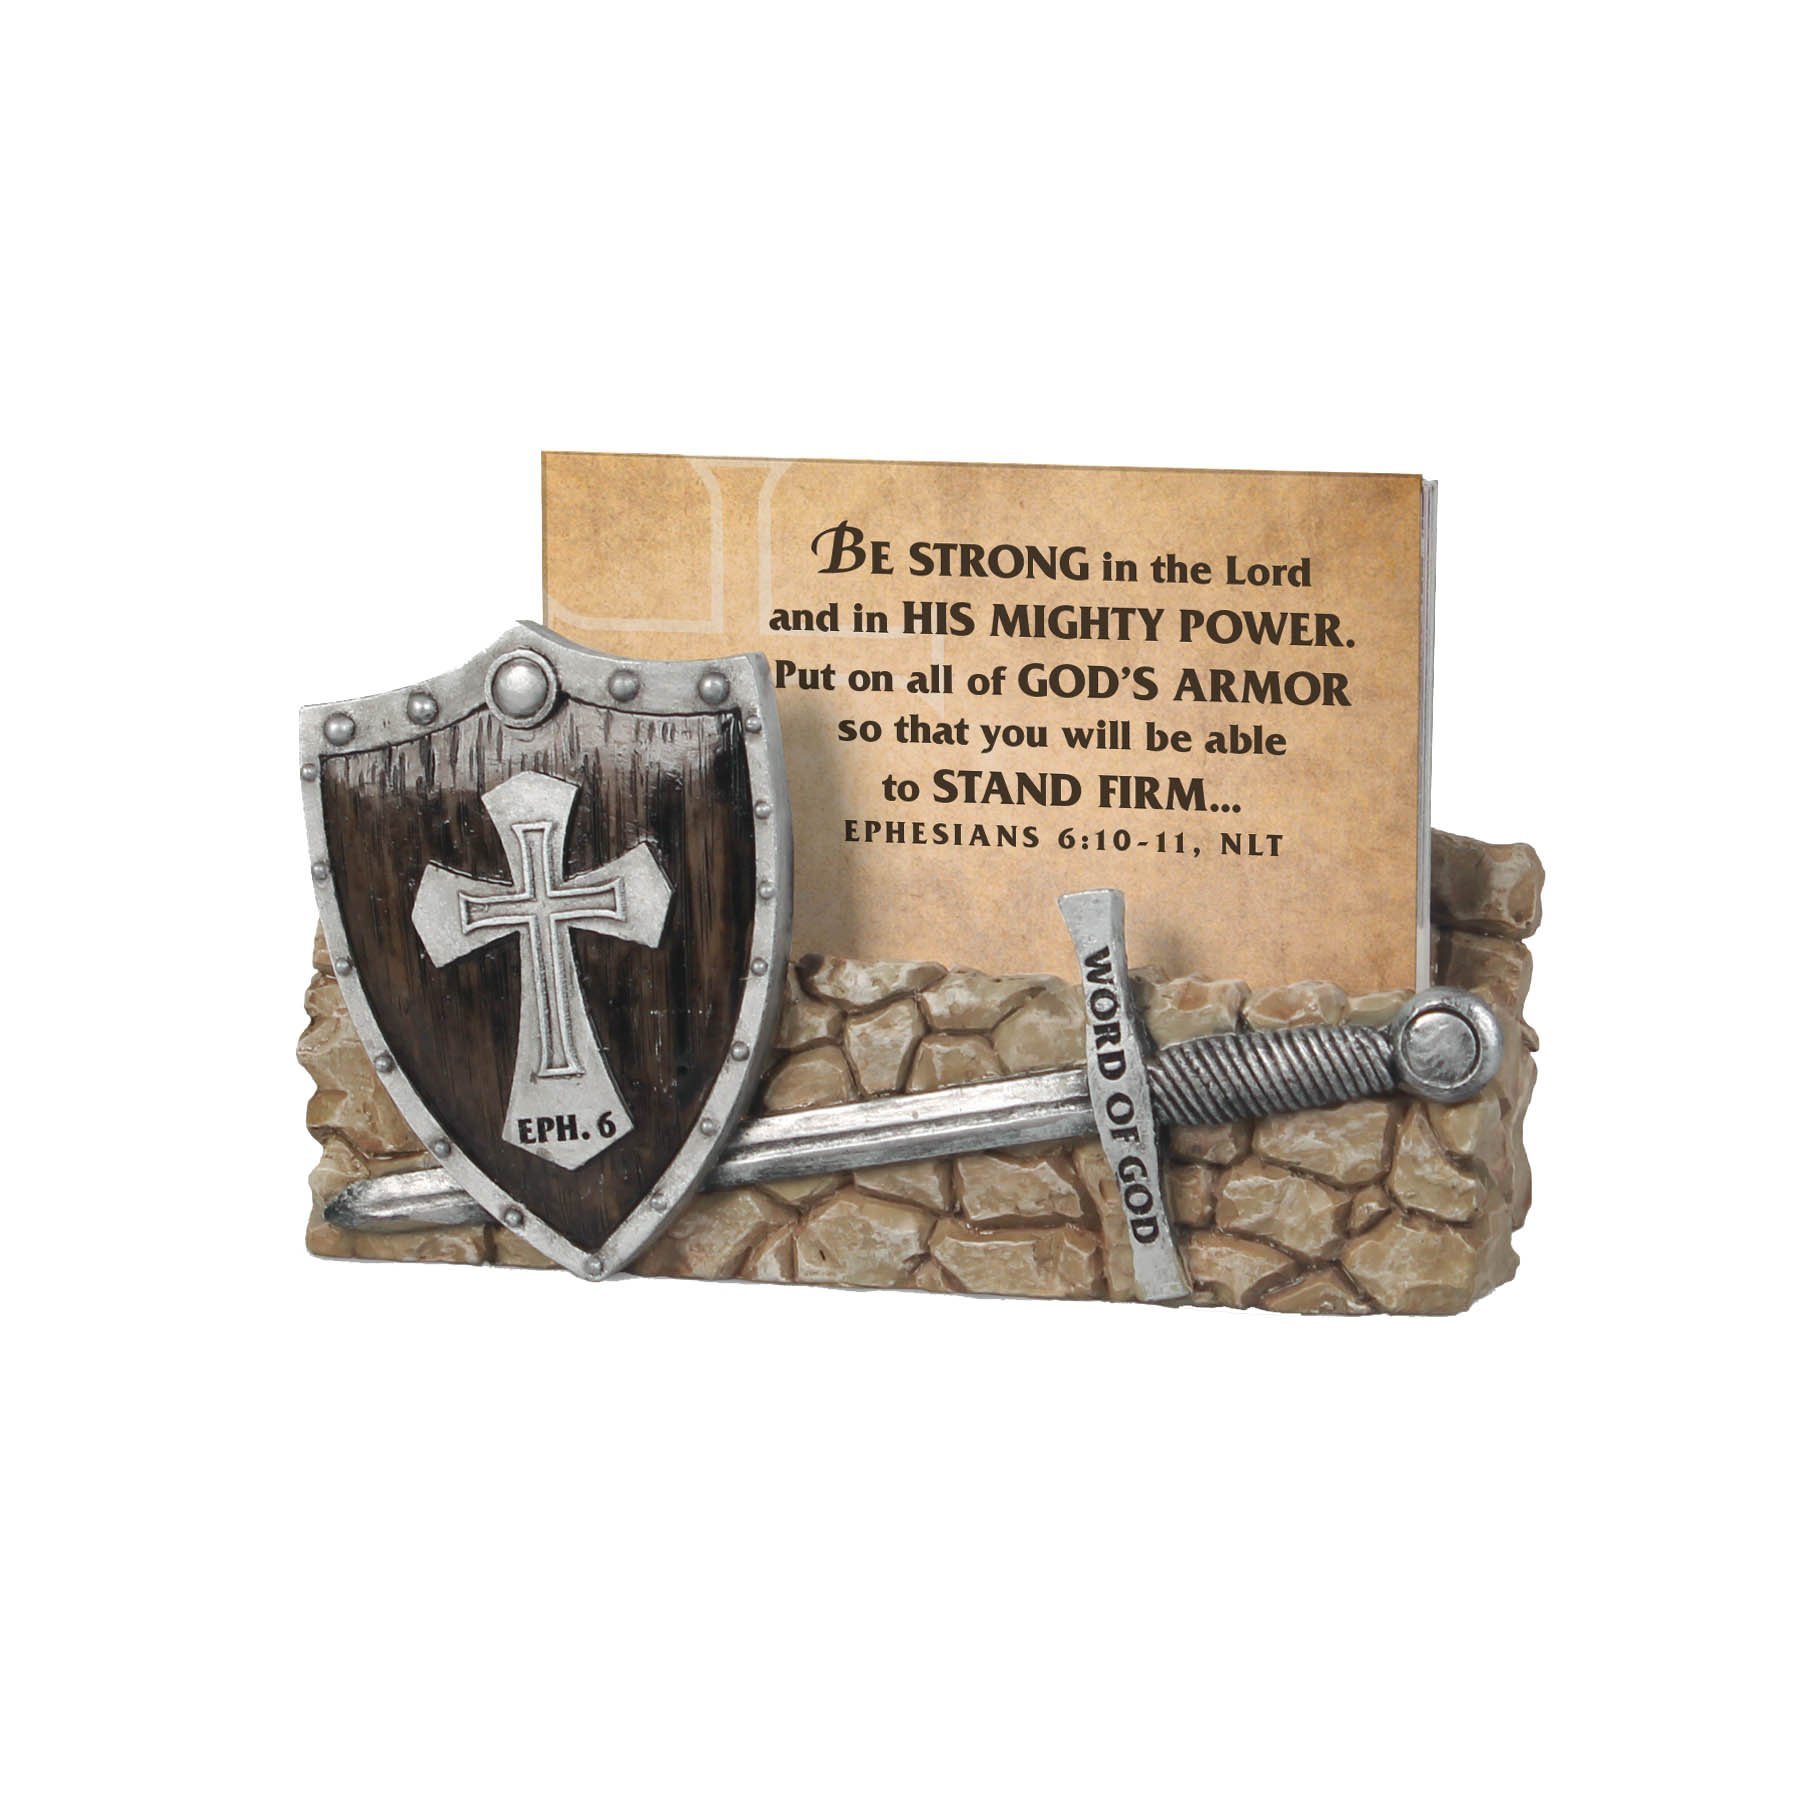 Lighthouse Christian Products Word of God Armor of Godwit 30 Cards Scripture Card Holder, 3 1/2 x 4 1/2 x 1''